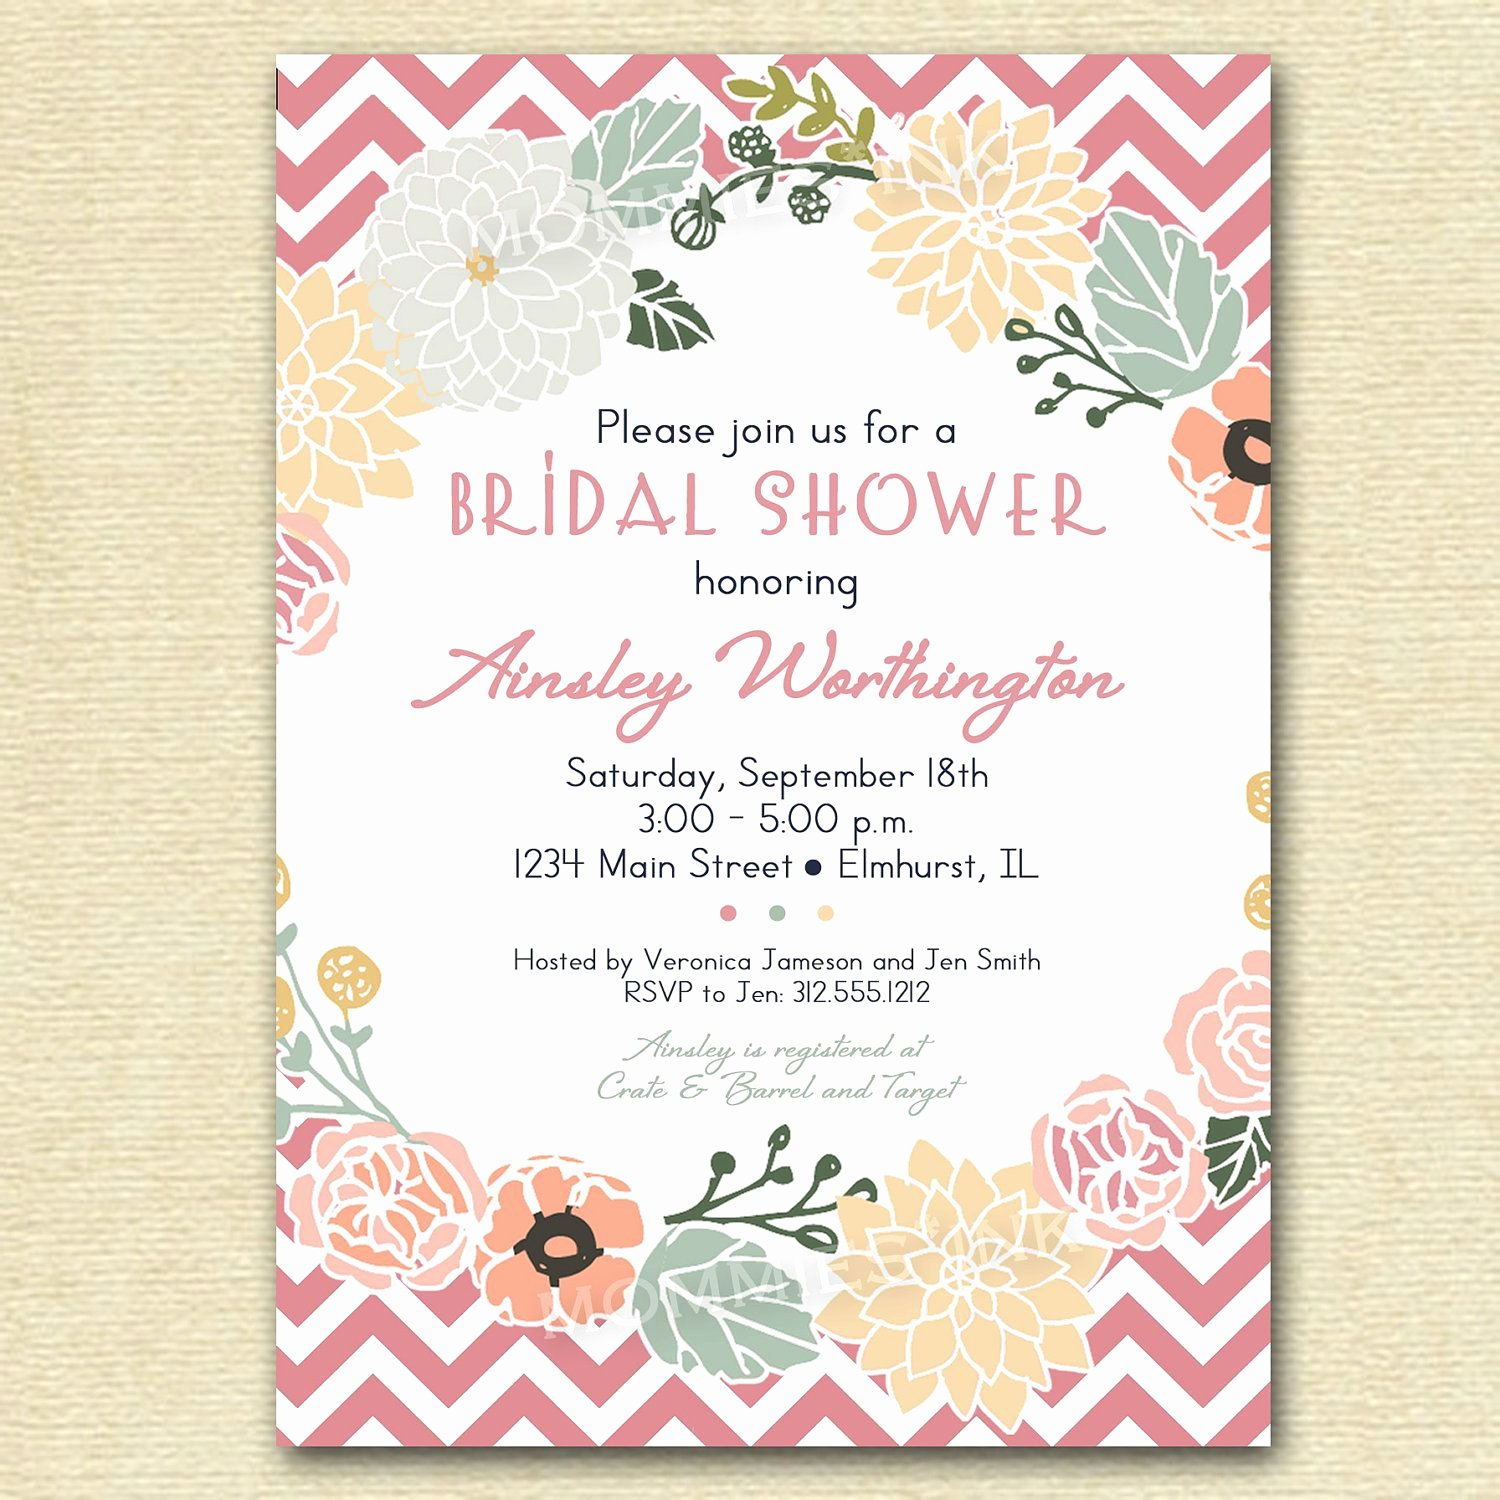 Bridal Shower Invitations Template Awesome Vintage Wedding Shower Invitations Vintage Bridal Shower